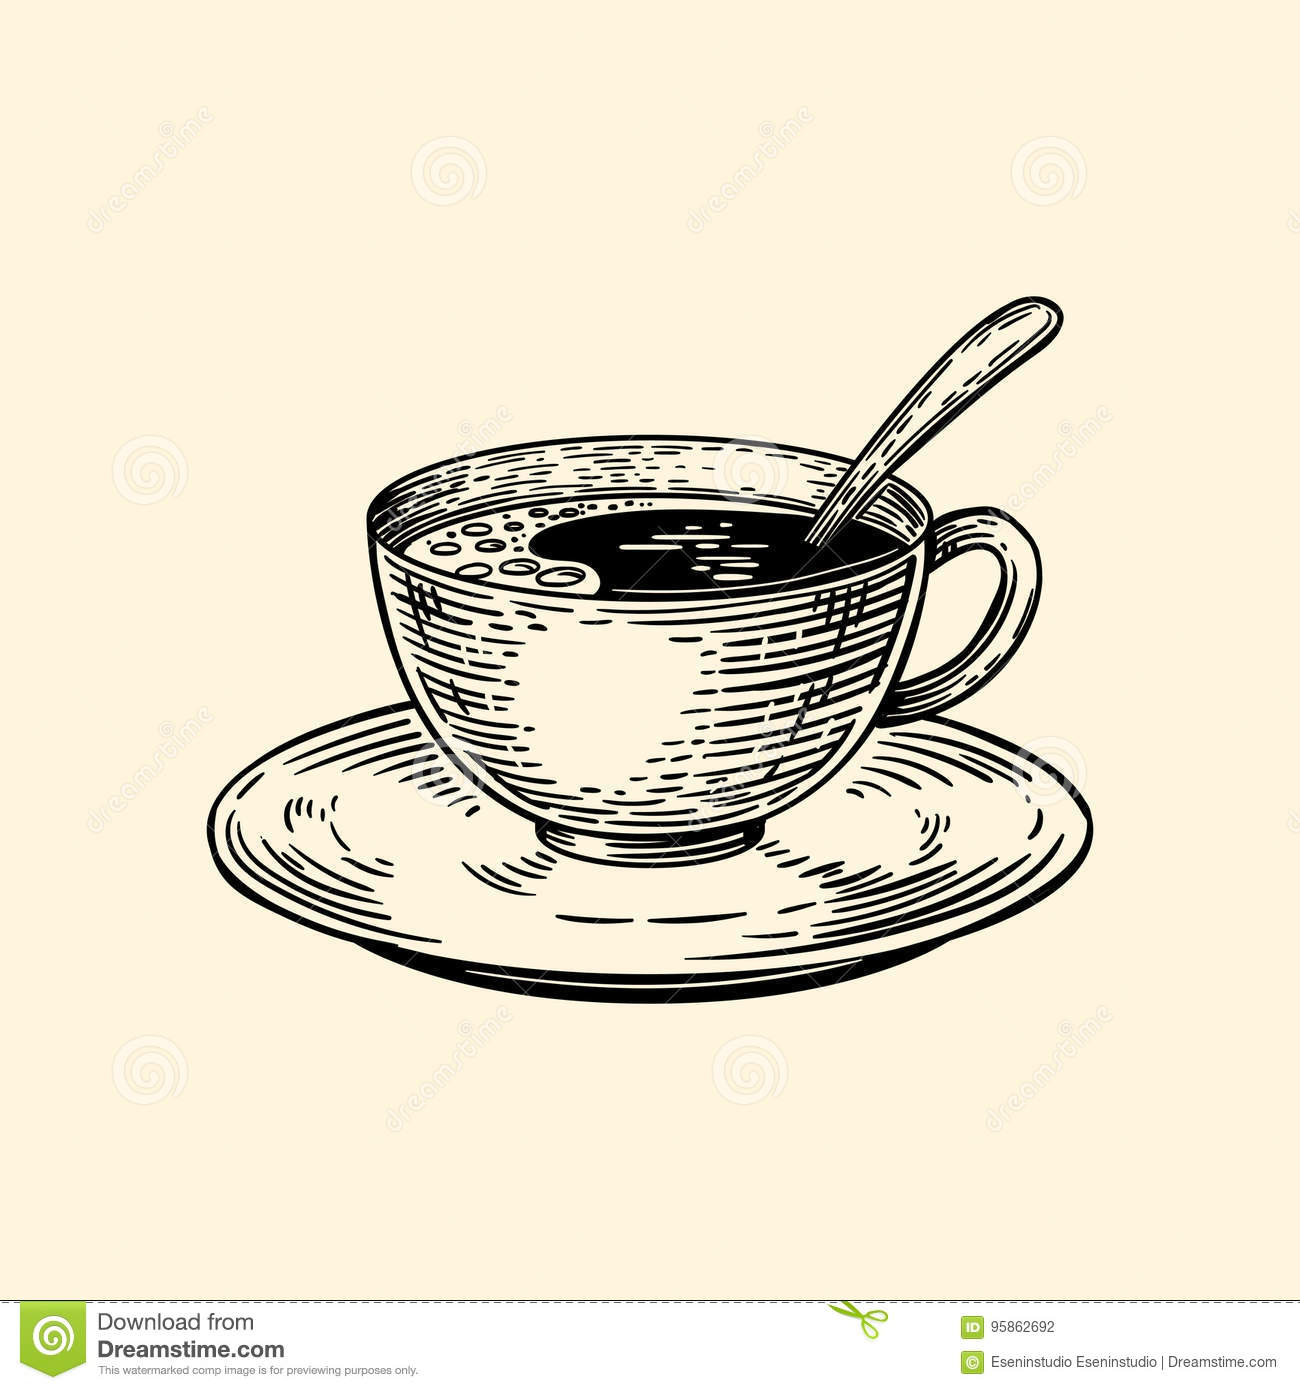 A Cup Of Coffee On A Saucer With A Spoon Vector Illustration In Sketch Style Stock Illustration Illustration Of Engraved Brown 95862692